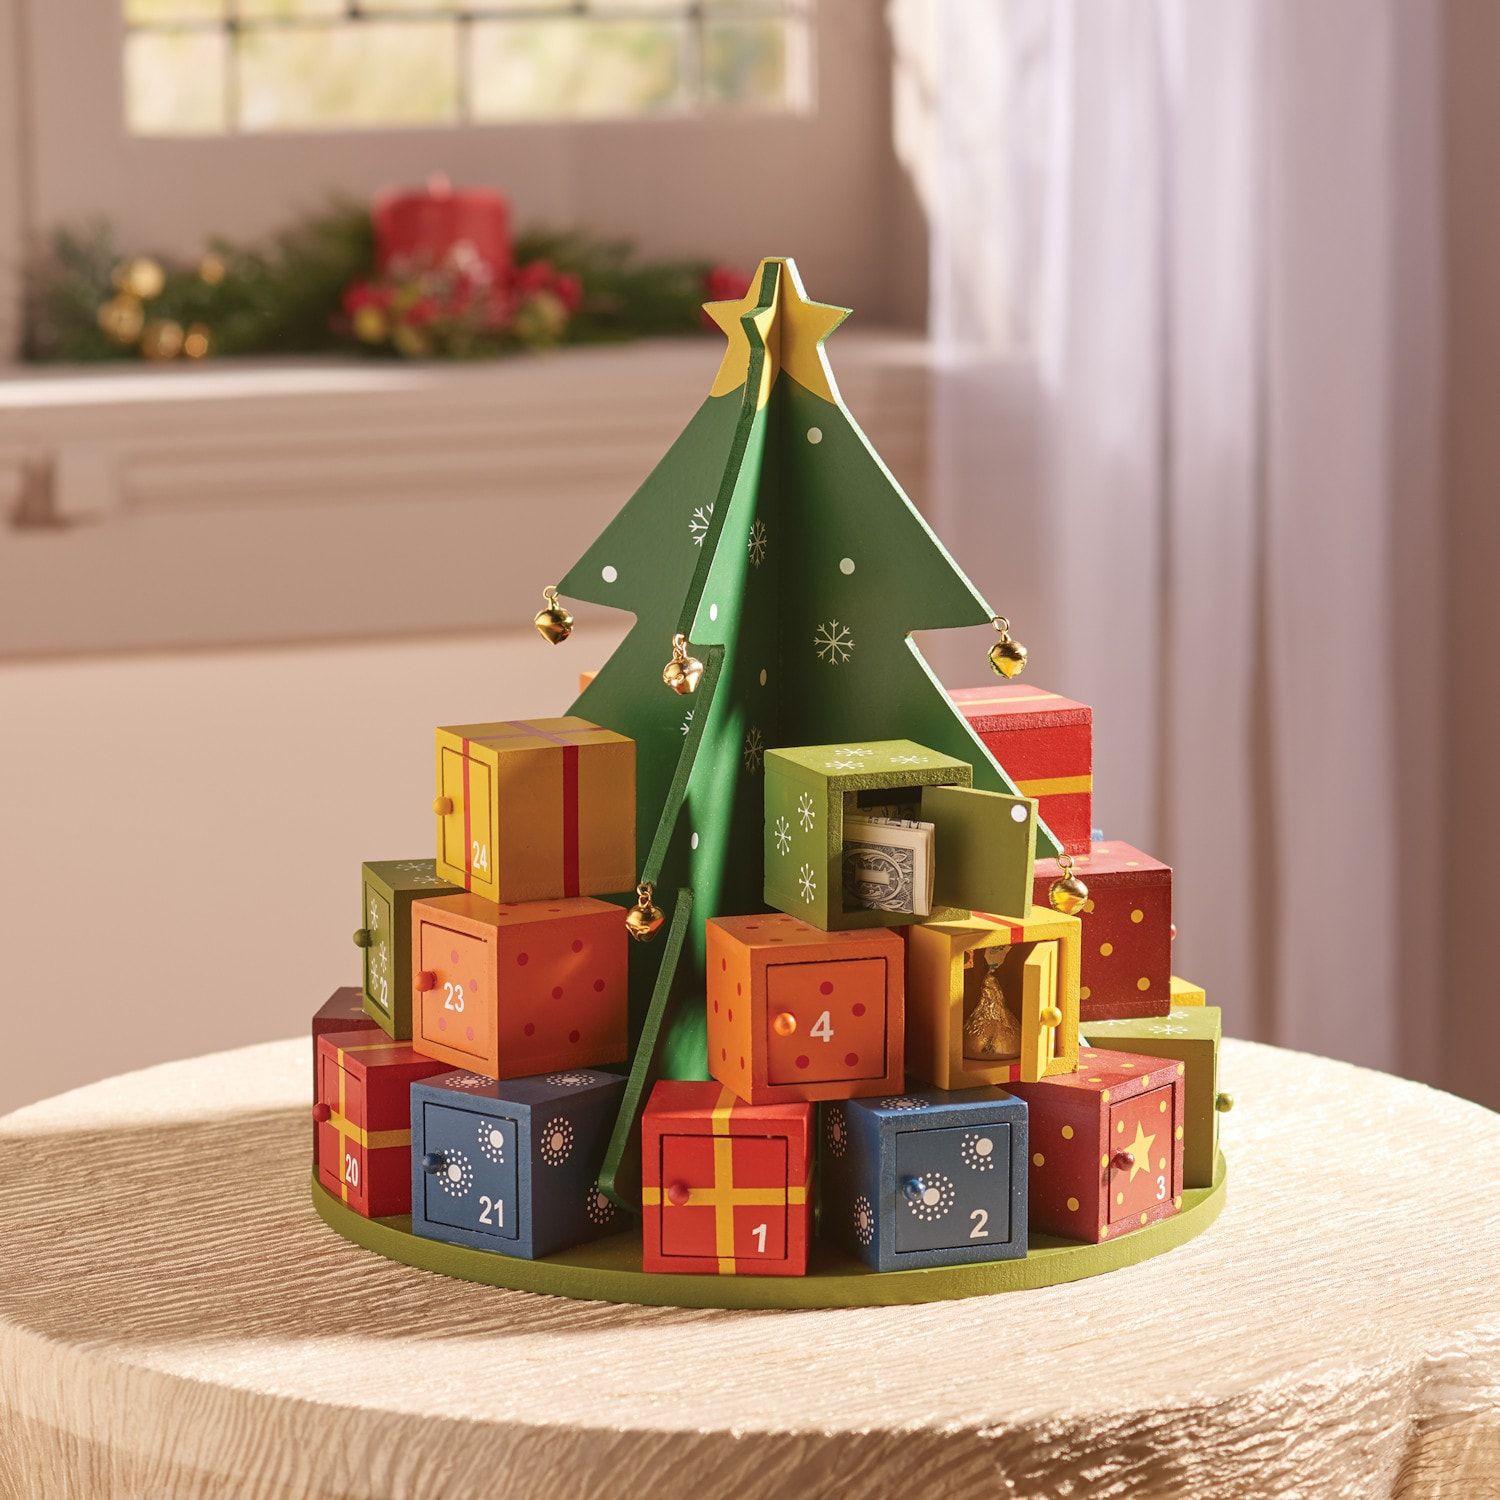 Wooden Christmas Tree Advent Calendar Holiday Countdown